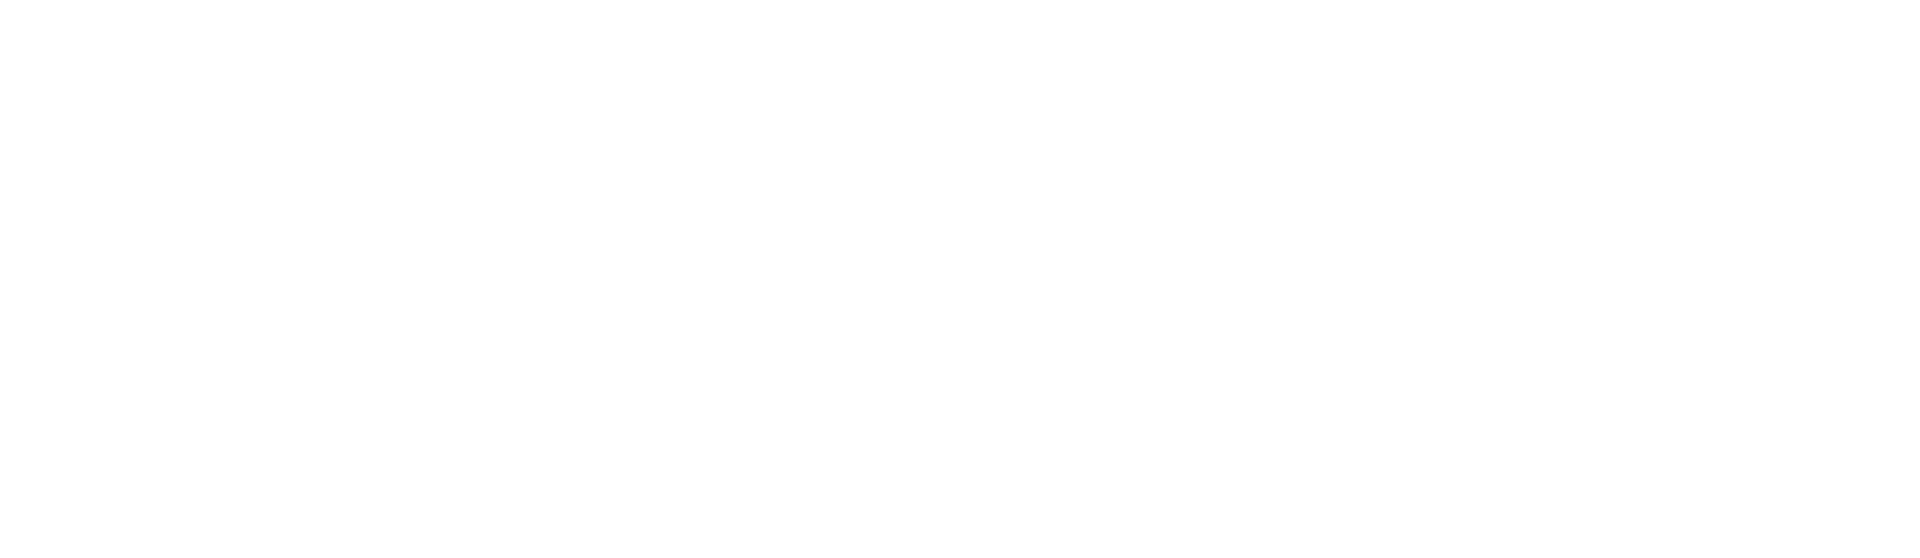 Fermanagh Omagh District Council Logo